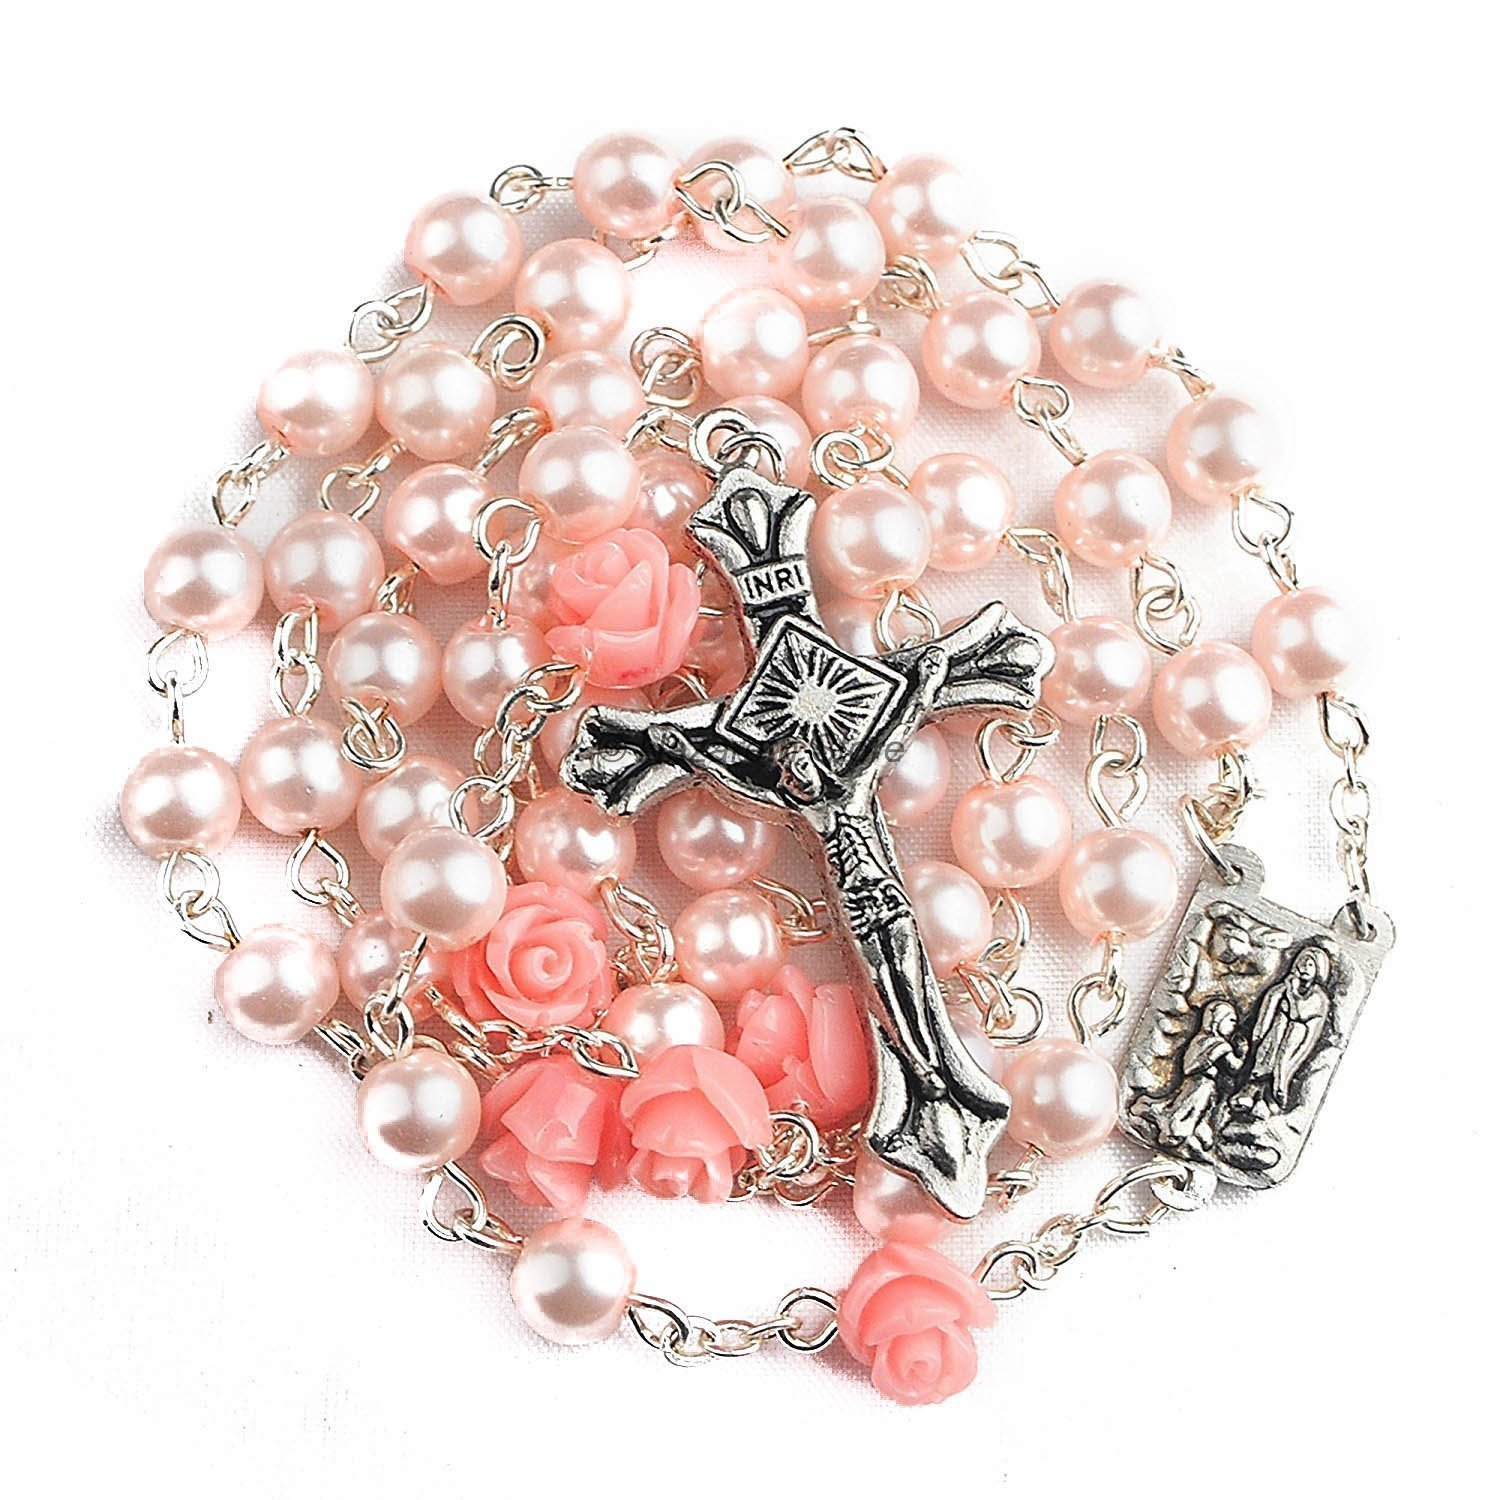 Catholic Pink Pearl Beads Rosary Necklace By Nazareth Store 6pcs Our Rose Flowers, Lourdes Medal & Cross NS